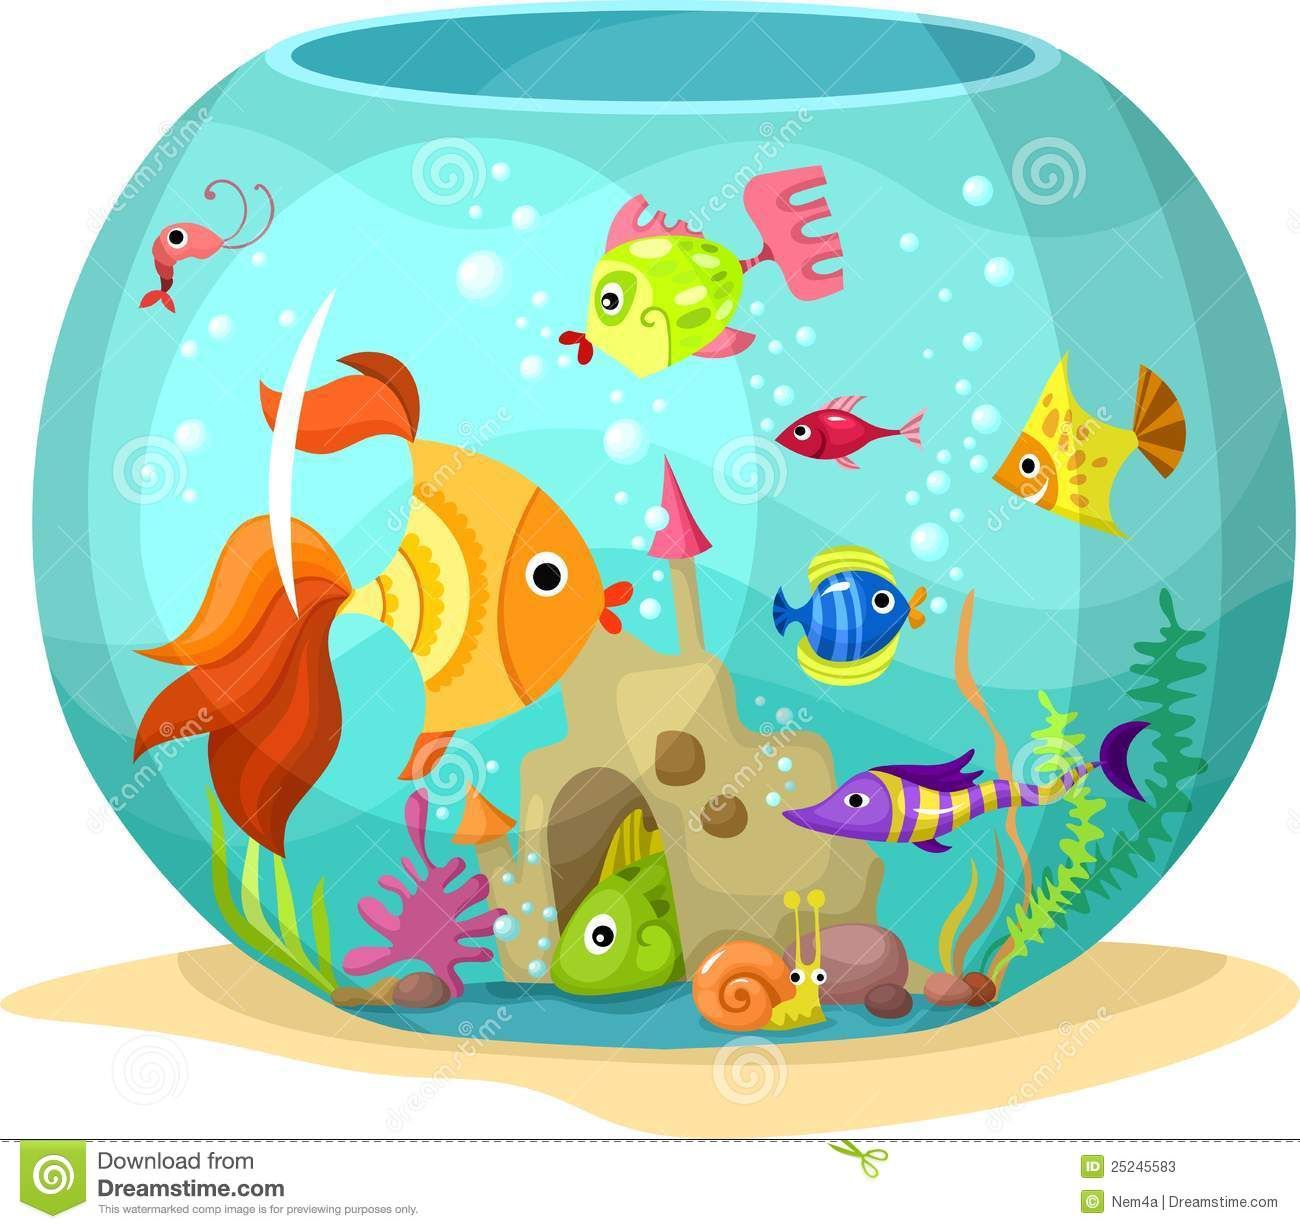 fish tank illustration.